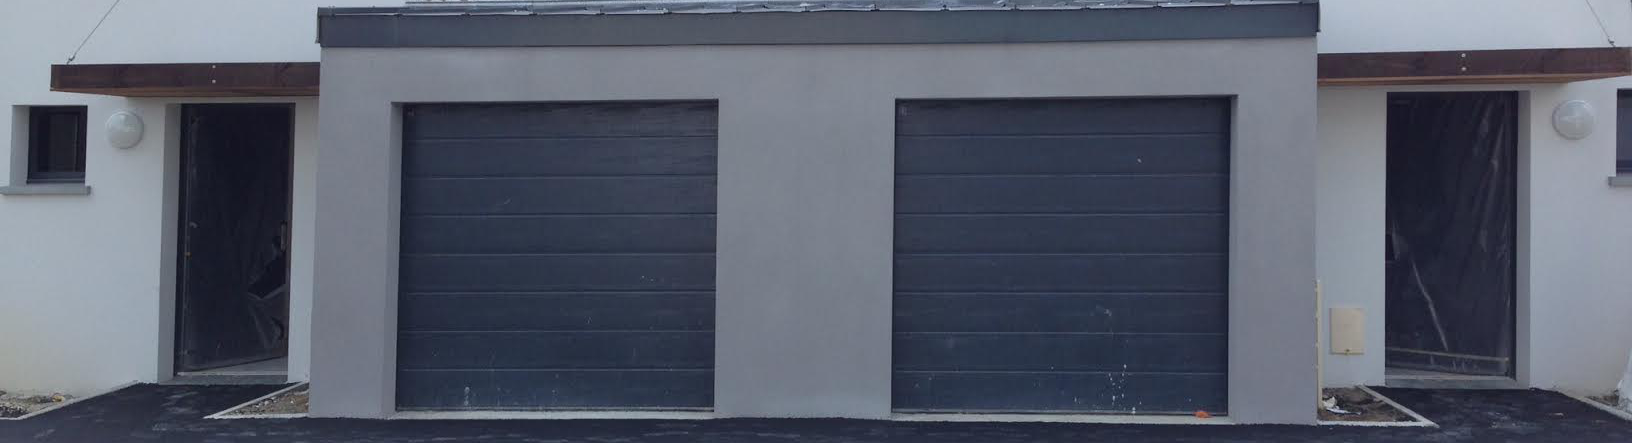 Porte de garage sectionnelle grise anthracite andernos - Porte de garage sectionnelle gris anthracite ...